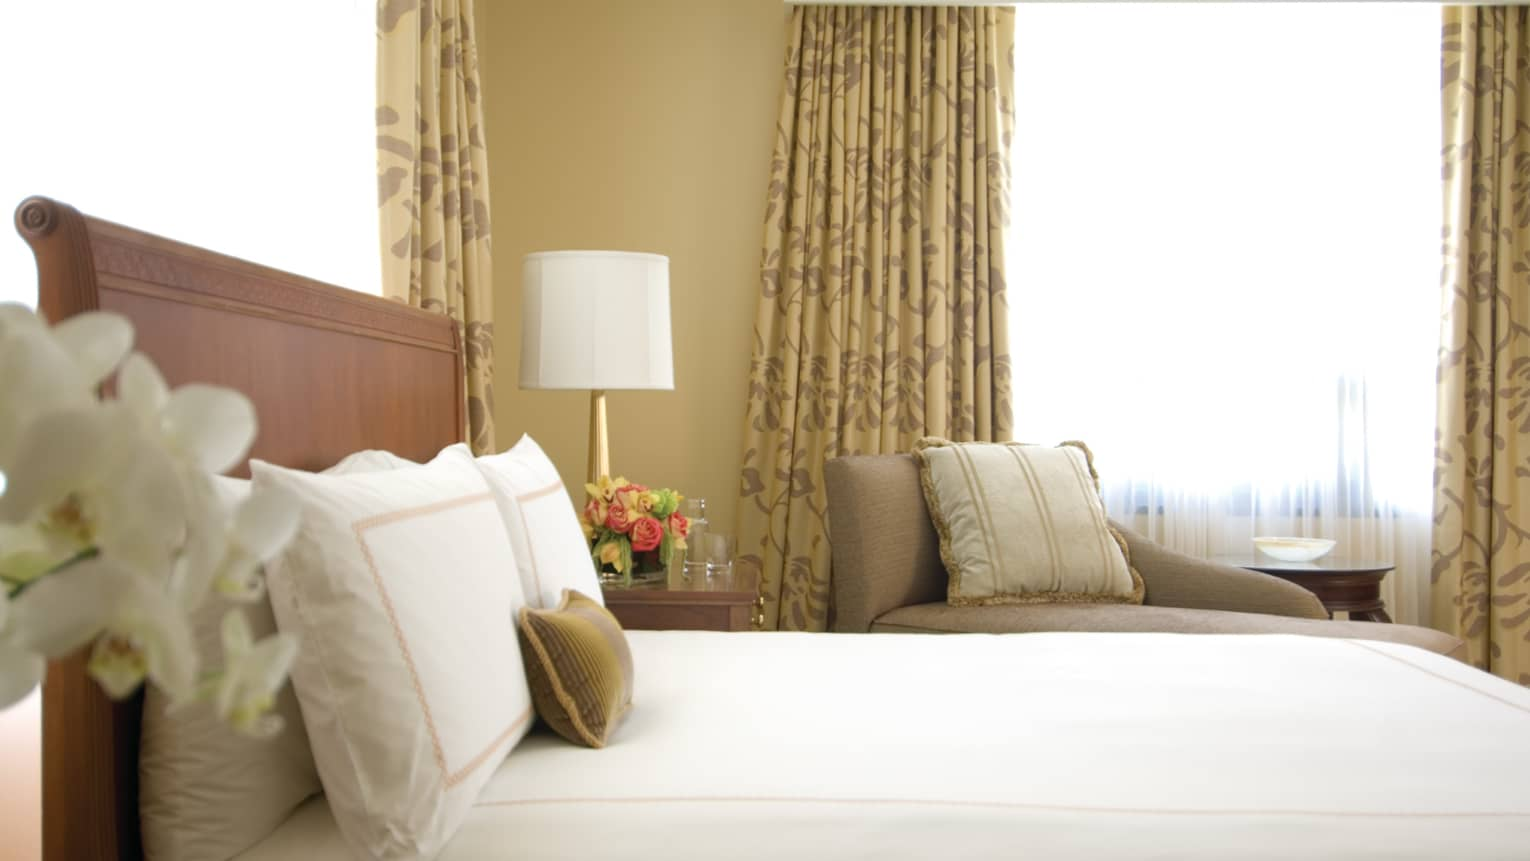 Atlanta Hotel Suites Rooms Luxury Accommodations Four Seasons